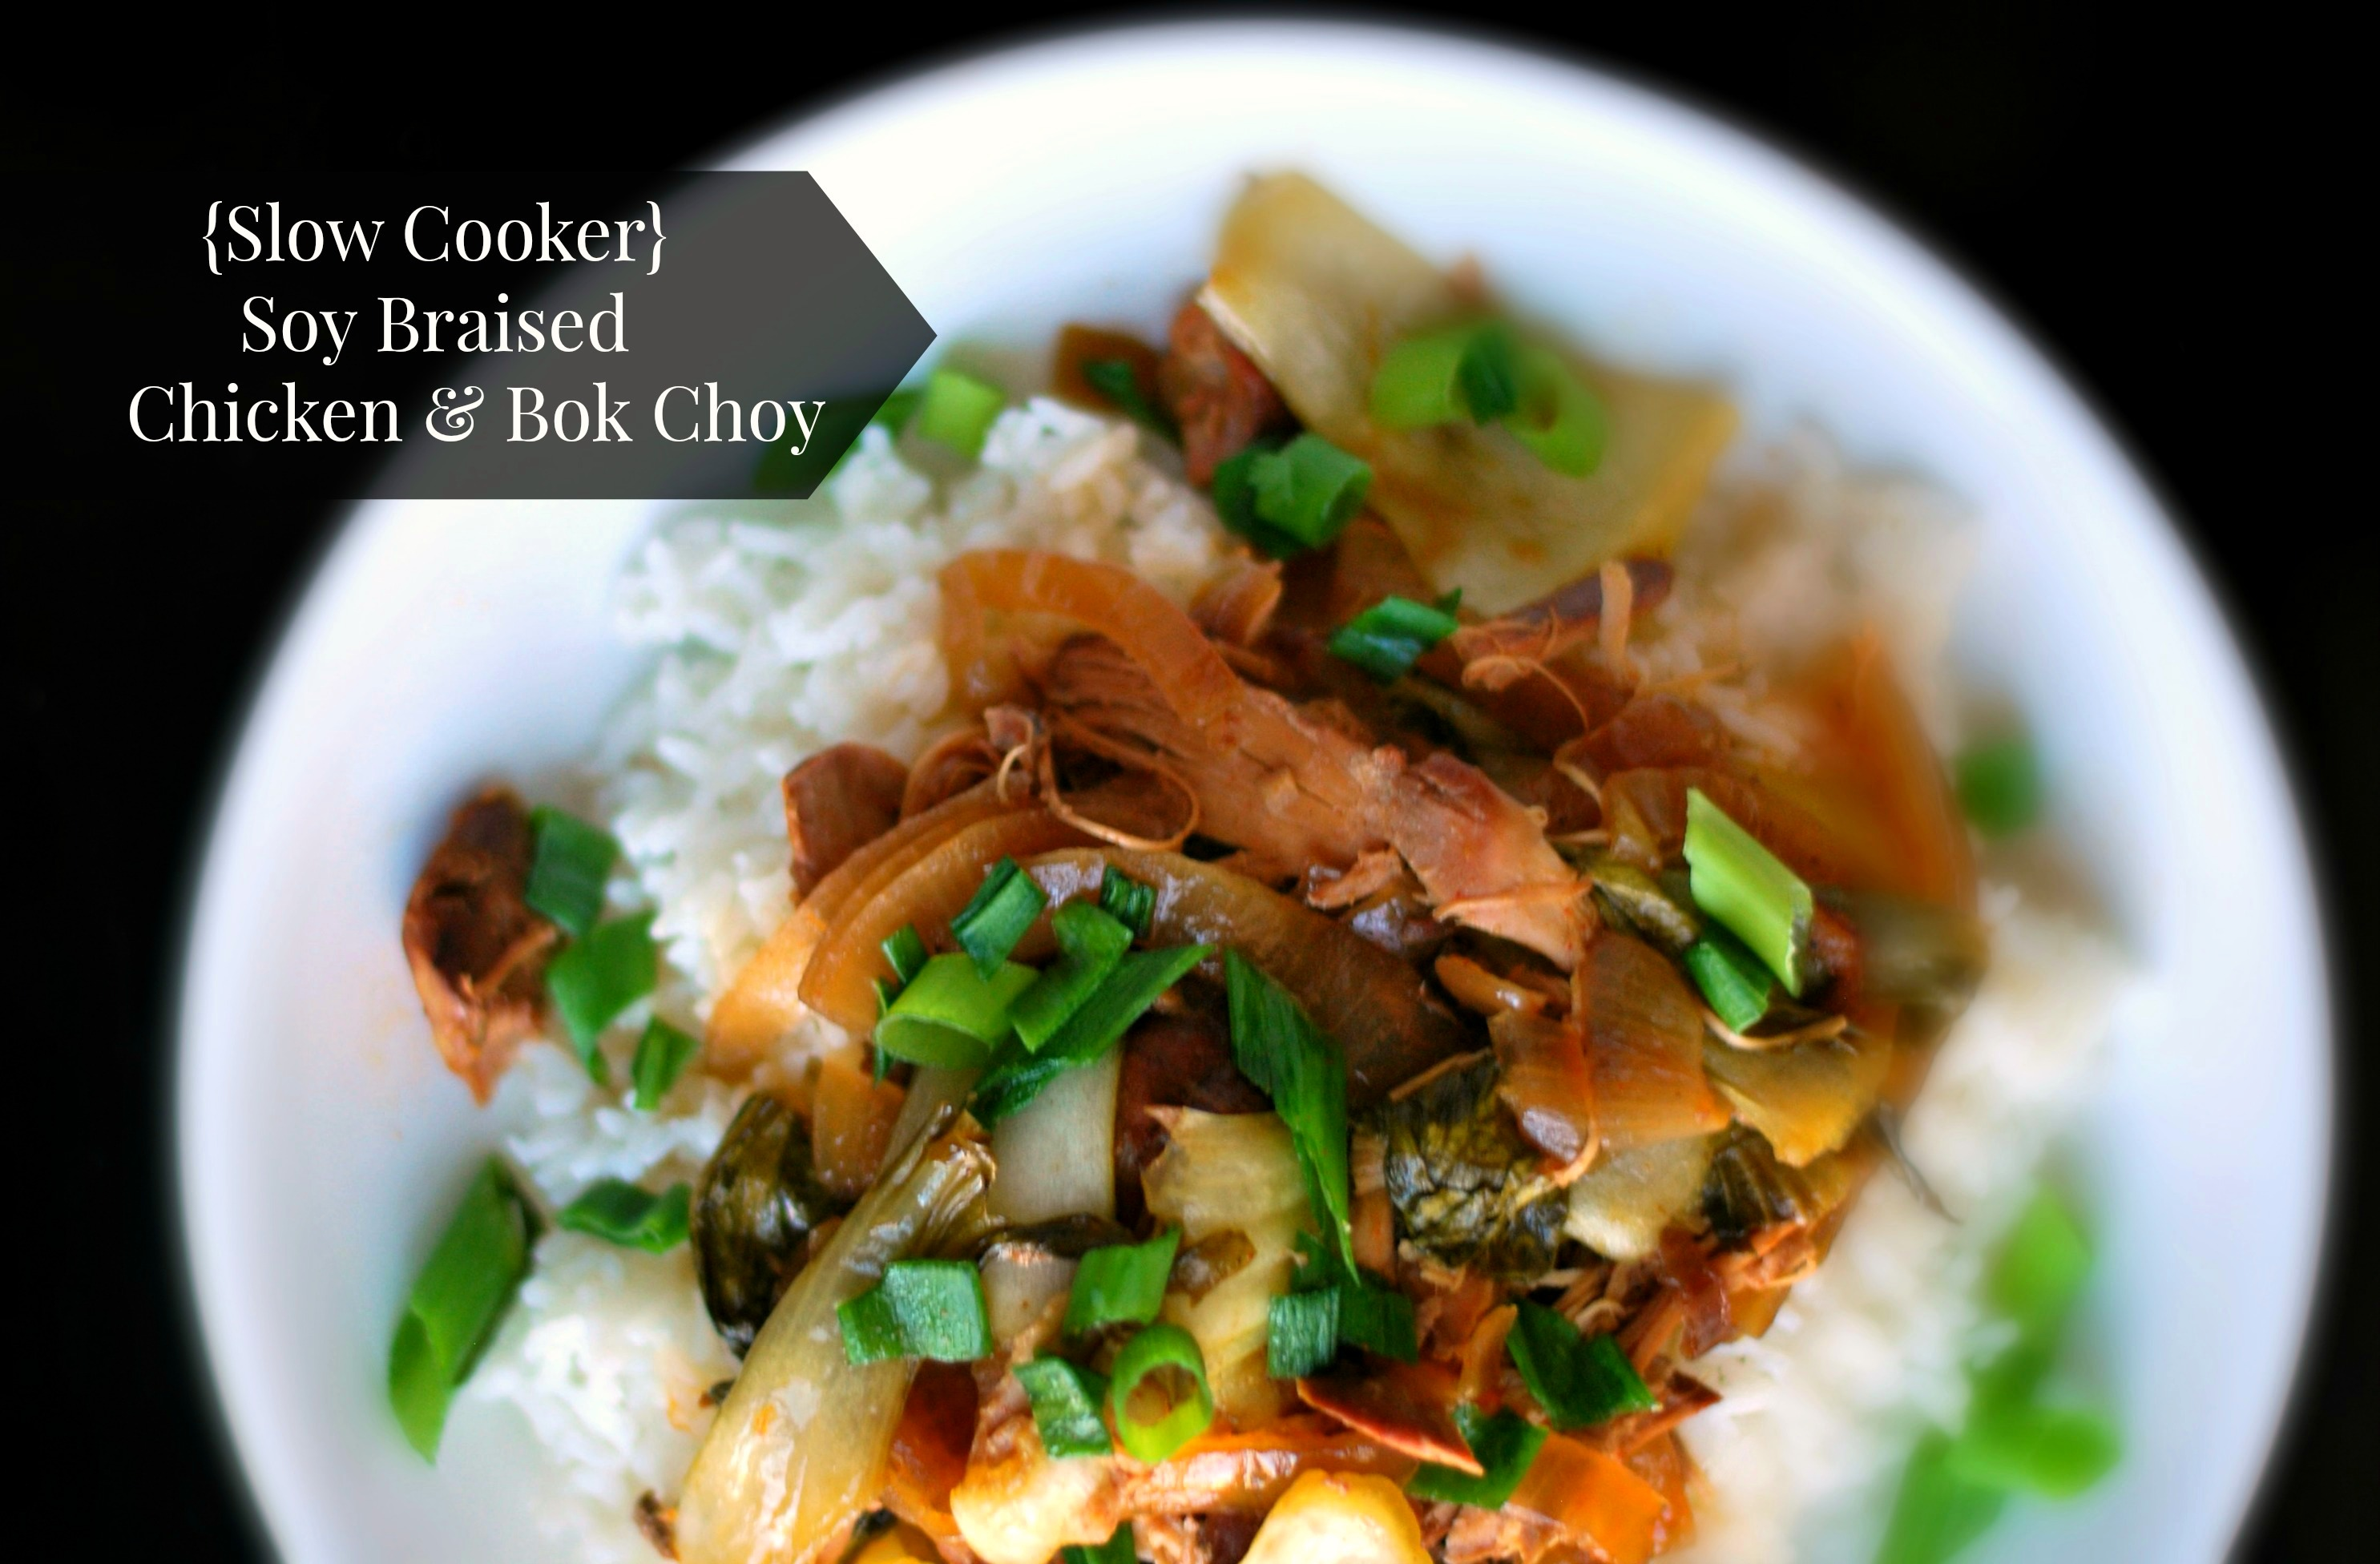 Slow Cooker Soy-Braised Chicken & Bok Choy | Aunt Bee's Recipes